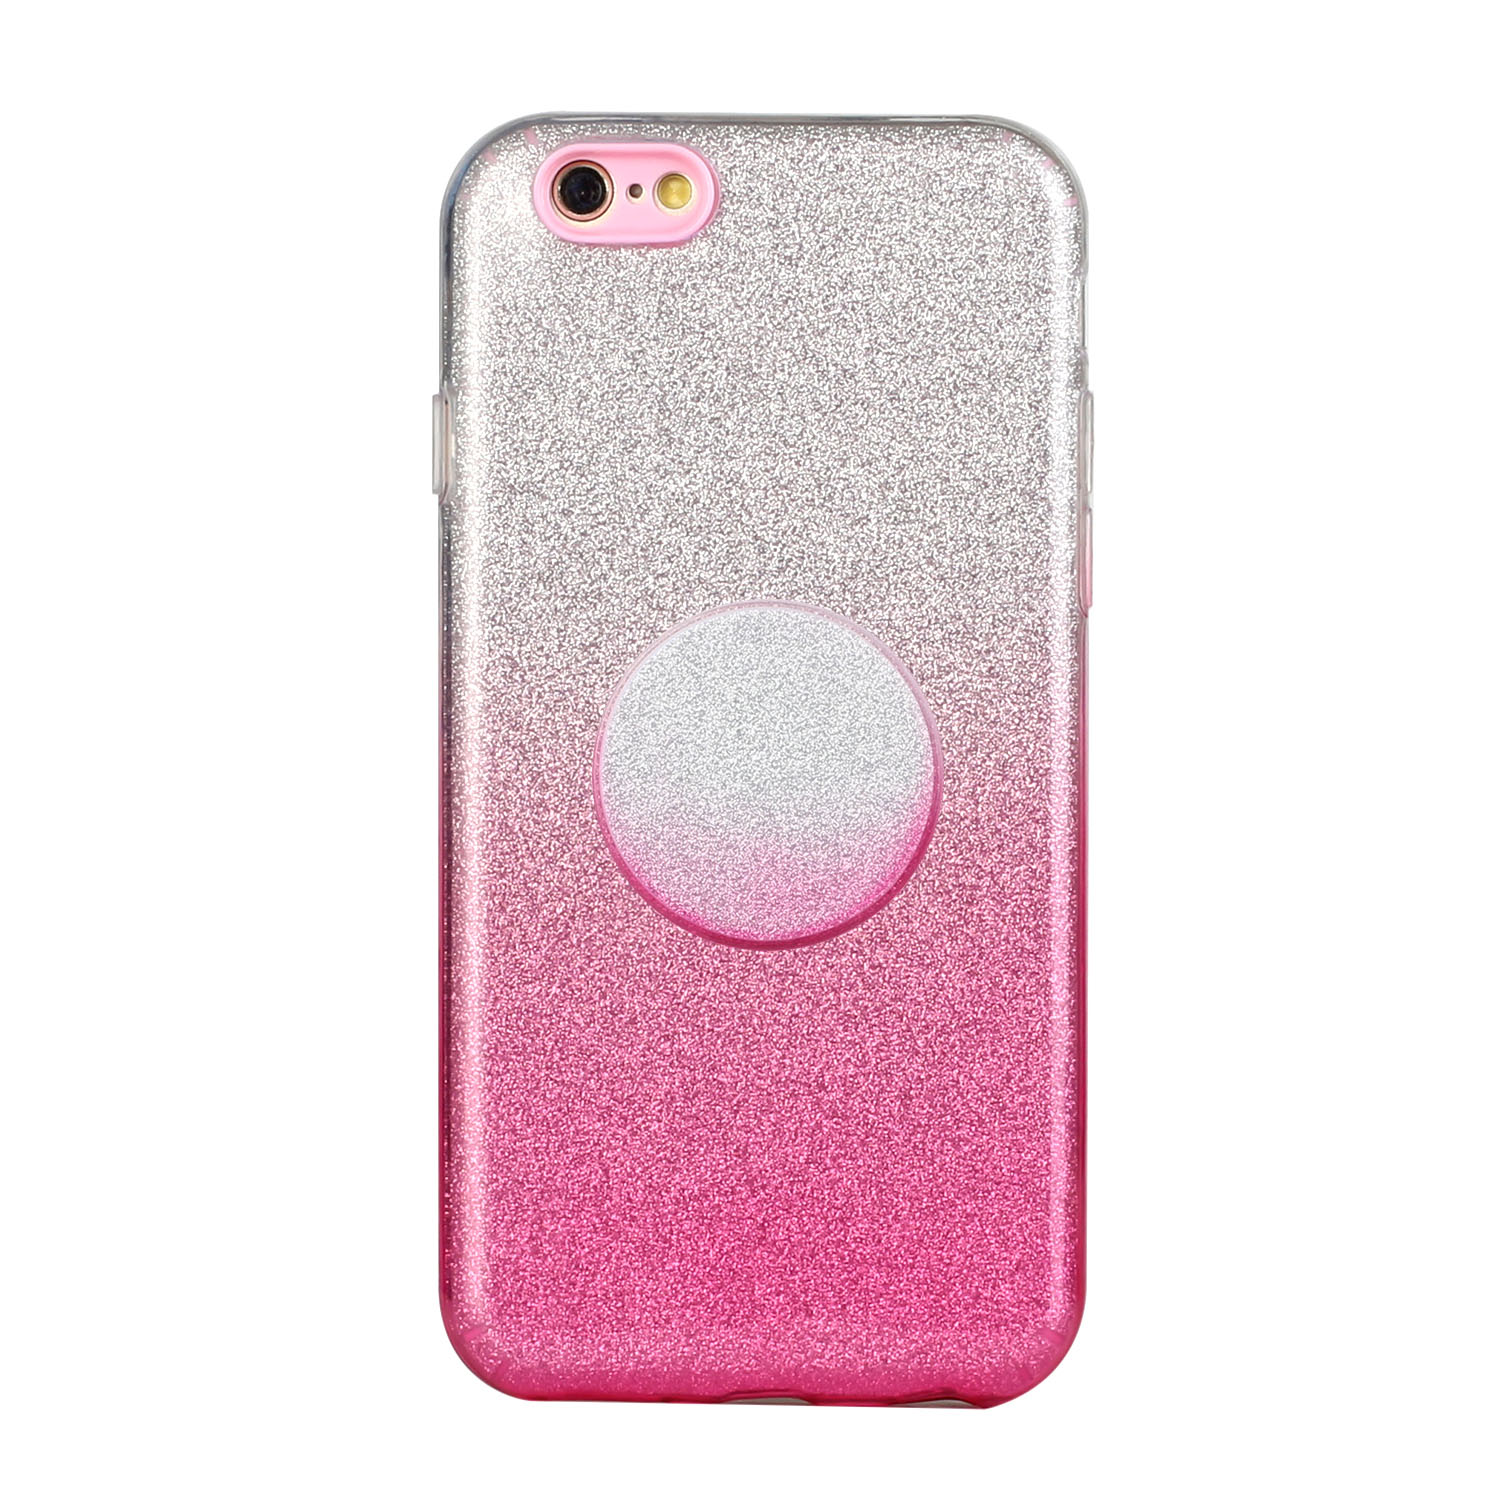 For iphone 6/6S/6 plus/6S plus/7/8/SE 2020 Phone Case Gradient Color Glitter Powder Phone Cover with Airbag Bracket Pink